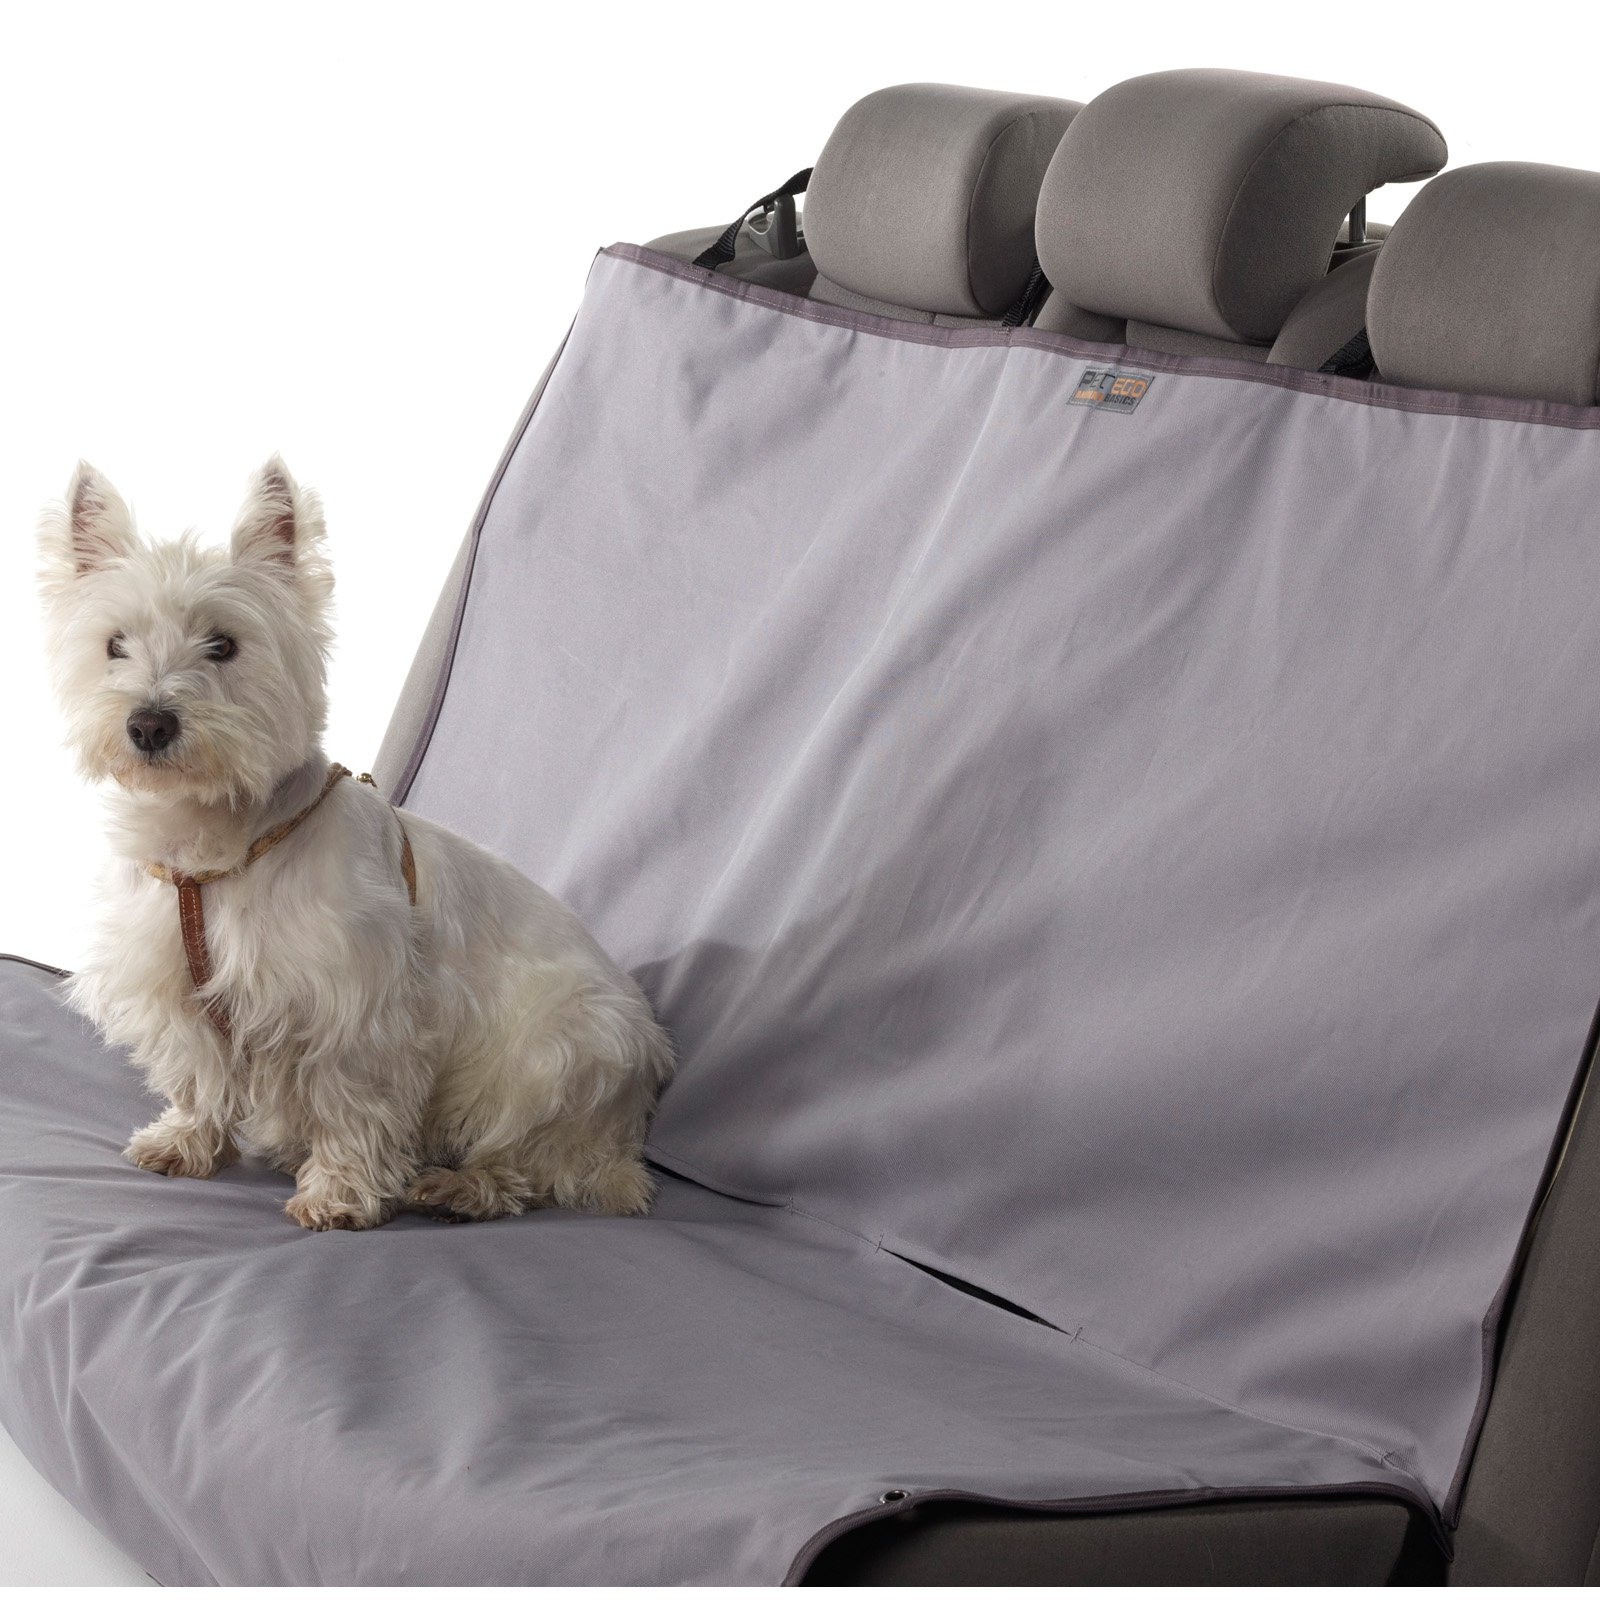 PETEGO Animal Basics Waterproof Rear Seat Pet Cover